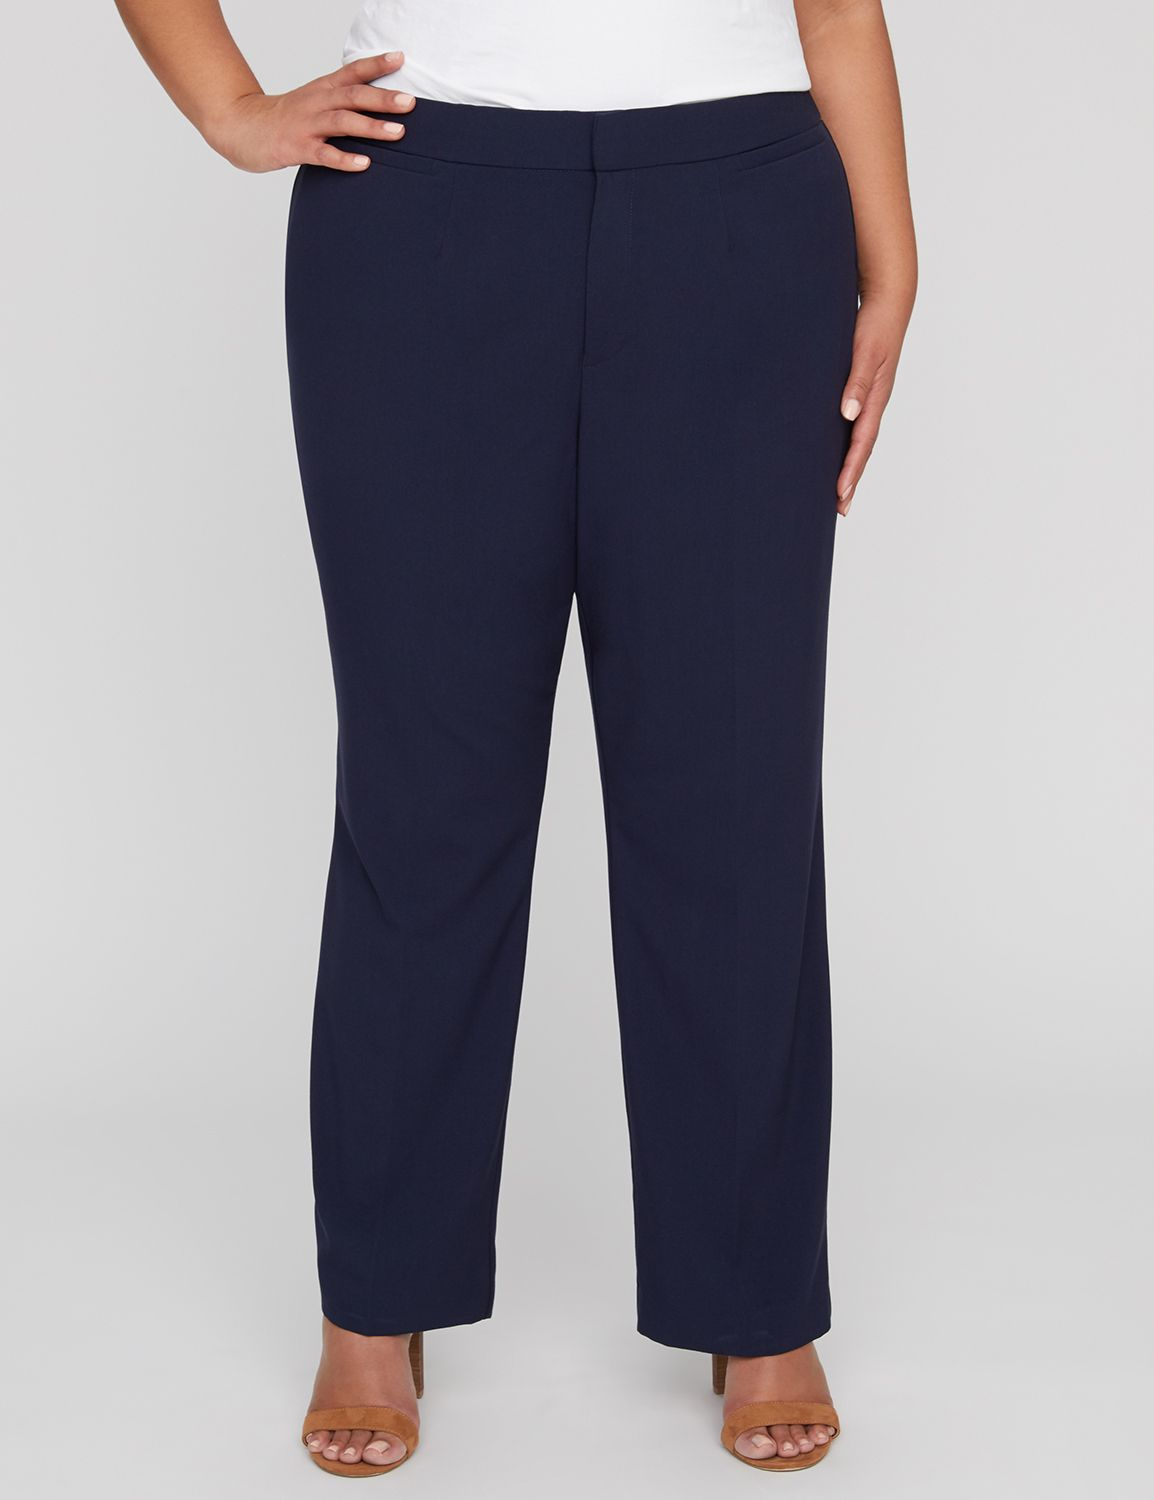 Right Fit Pant (Curvy) Right Fit Pant (Curvy) MP-300043641